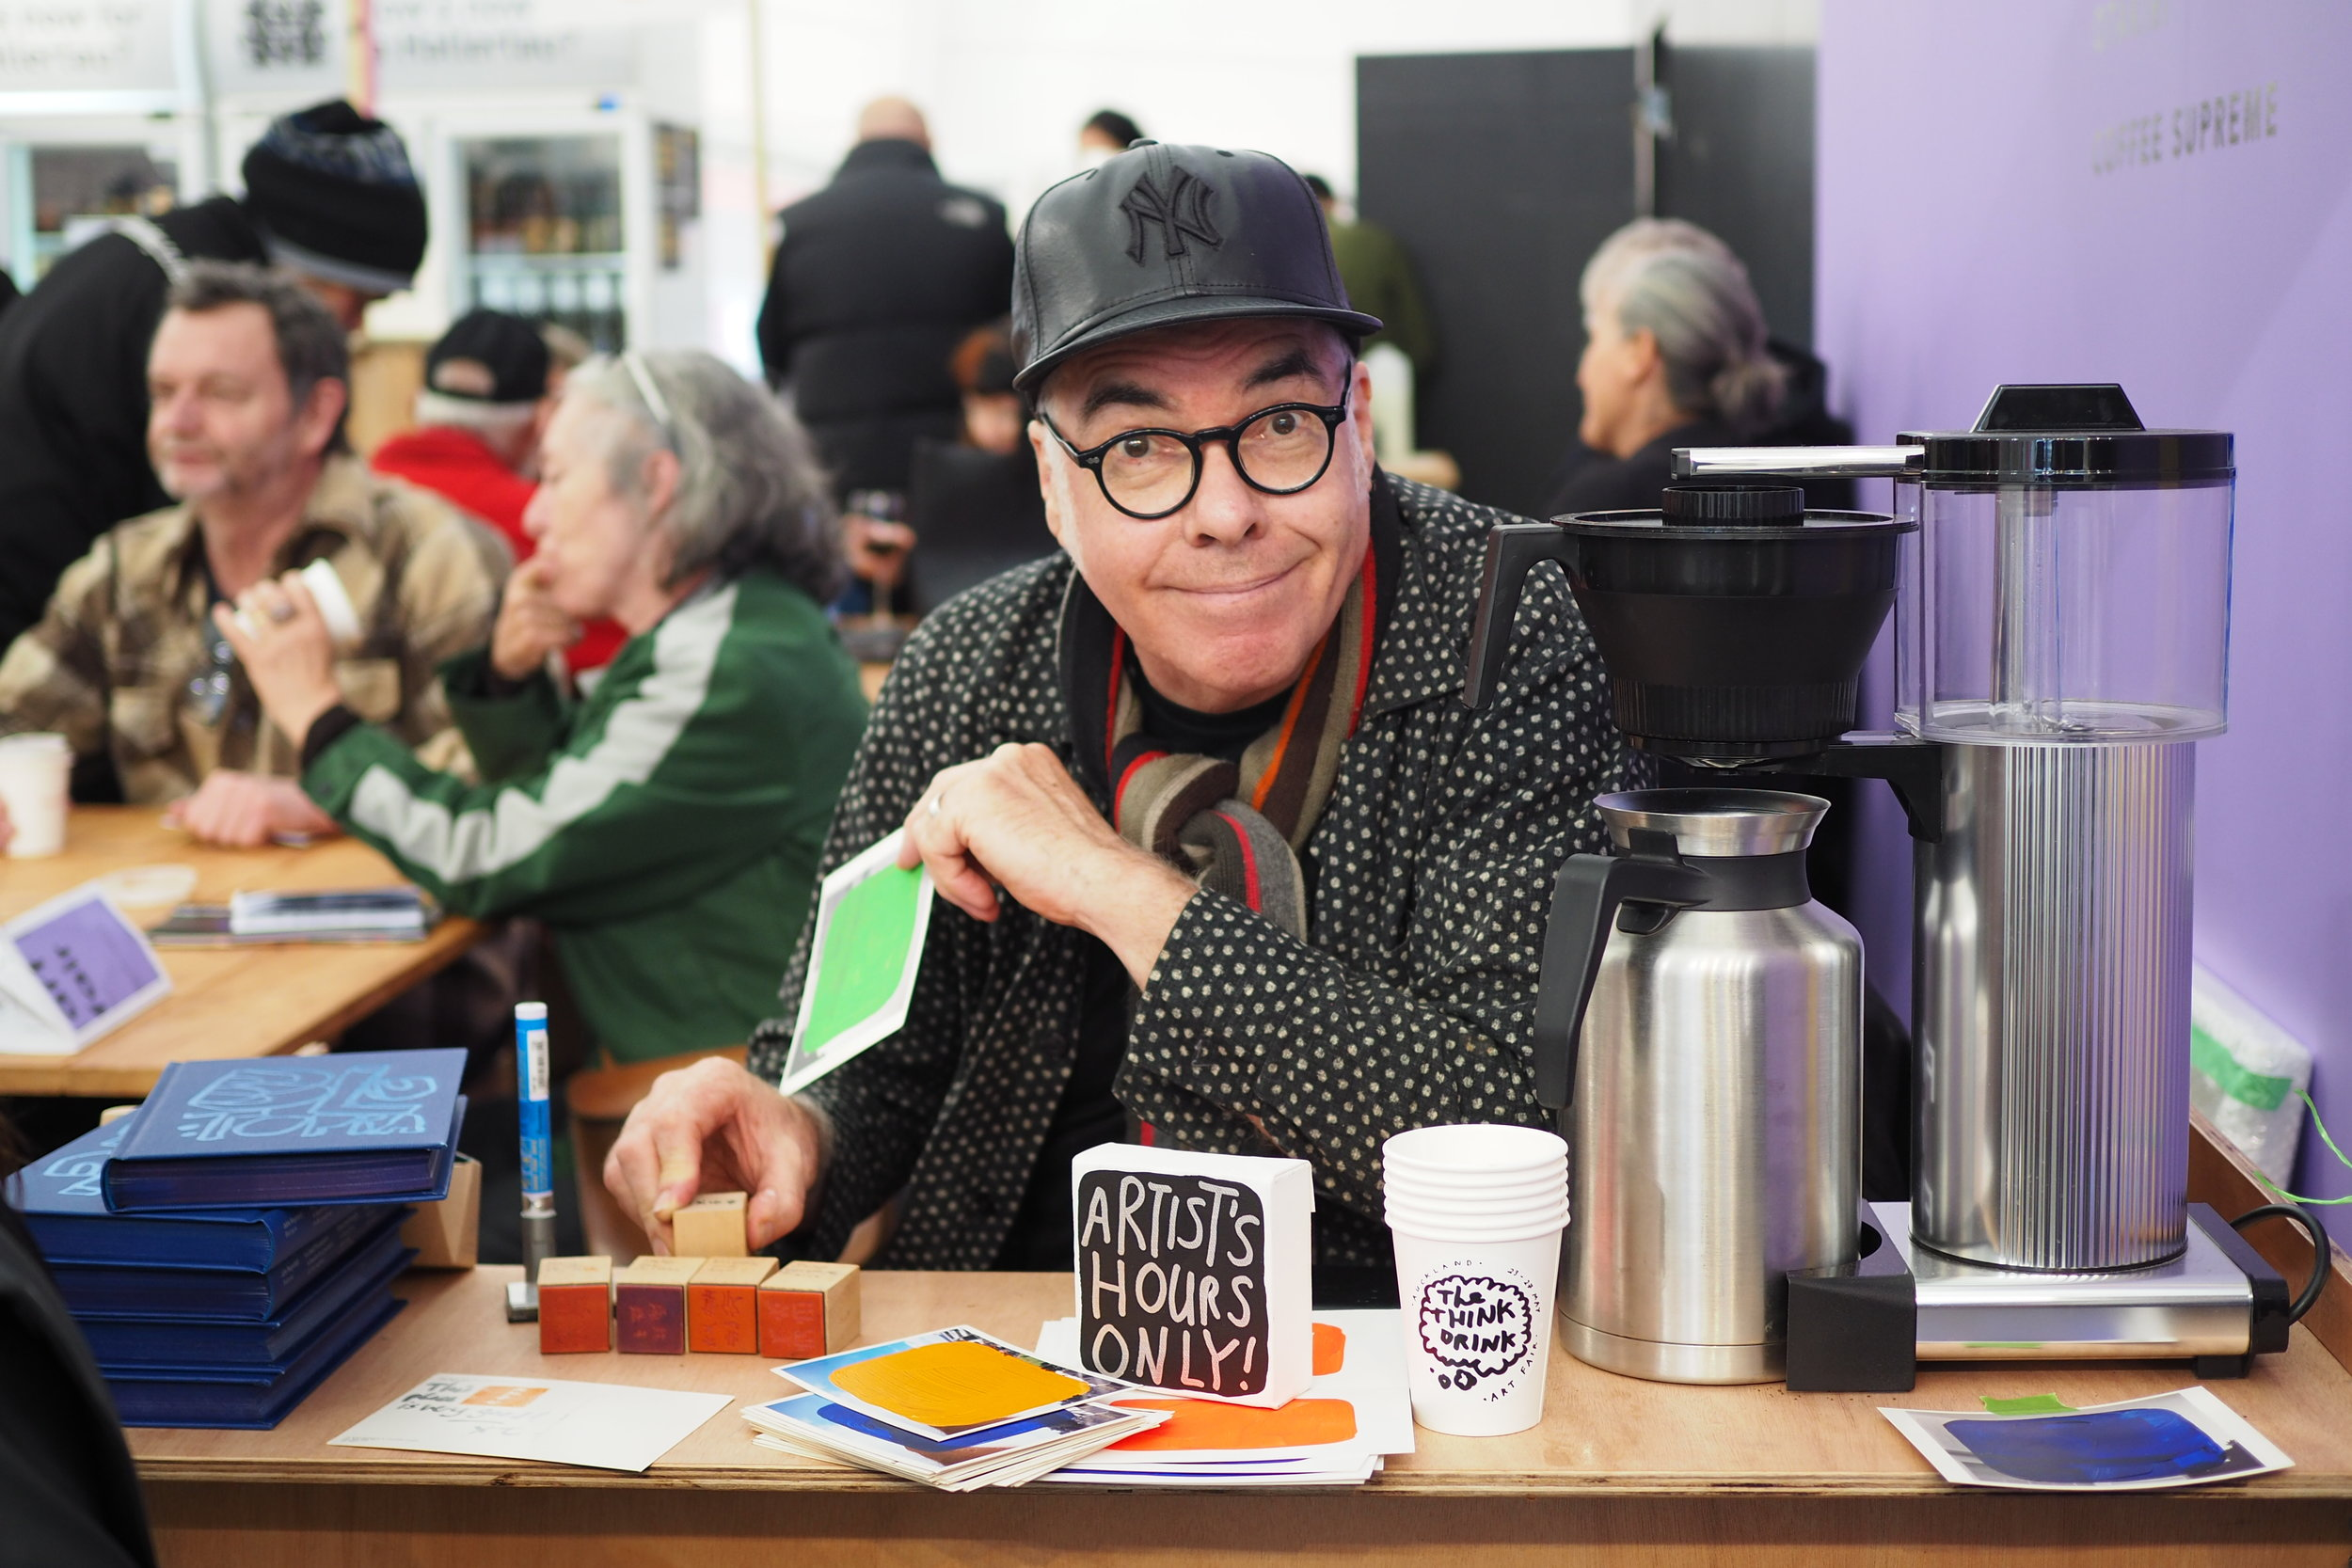 We grabbed a coffee and braved a conversation with well-known New Zealand contemporary artist, John Reynolds.